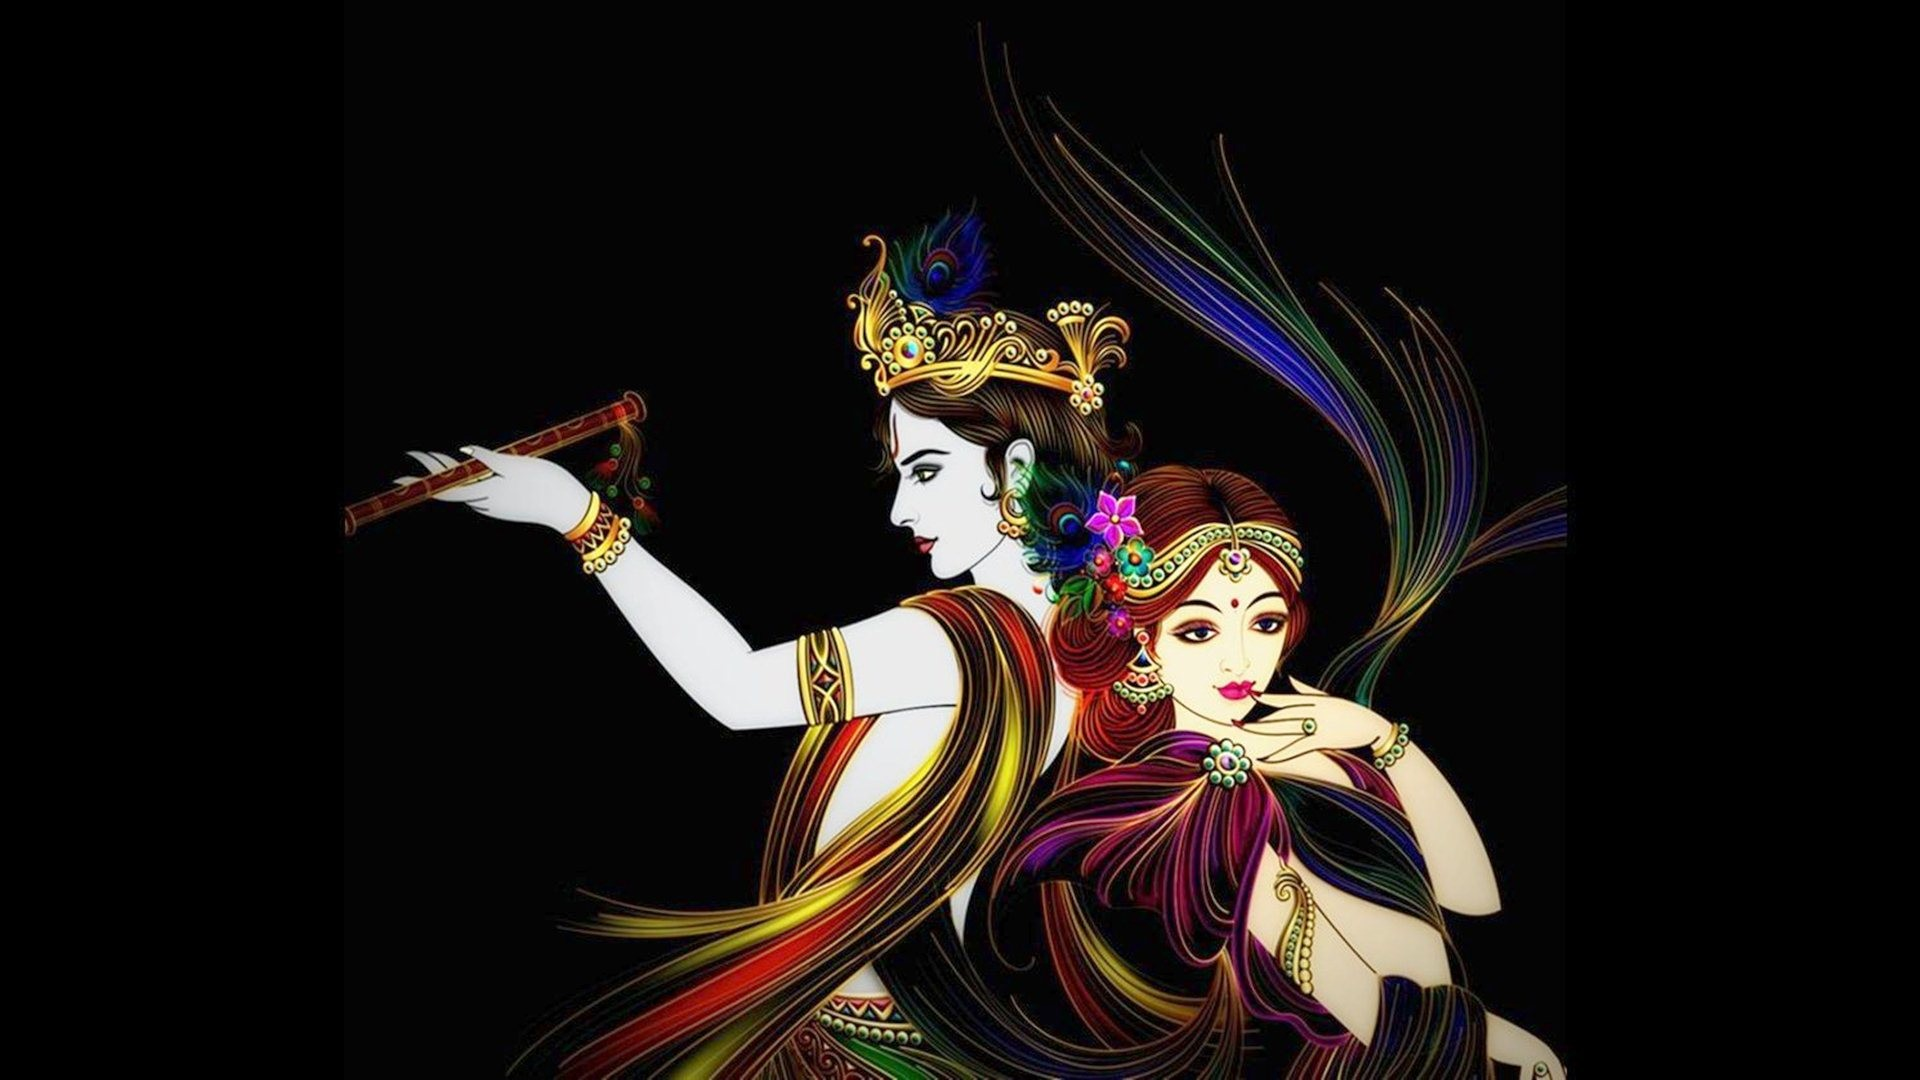 radha krishna hd wallpapers 68 images getwallpapers com